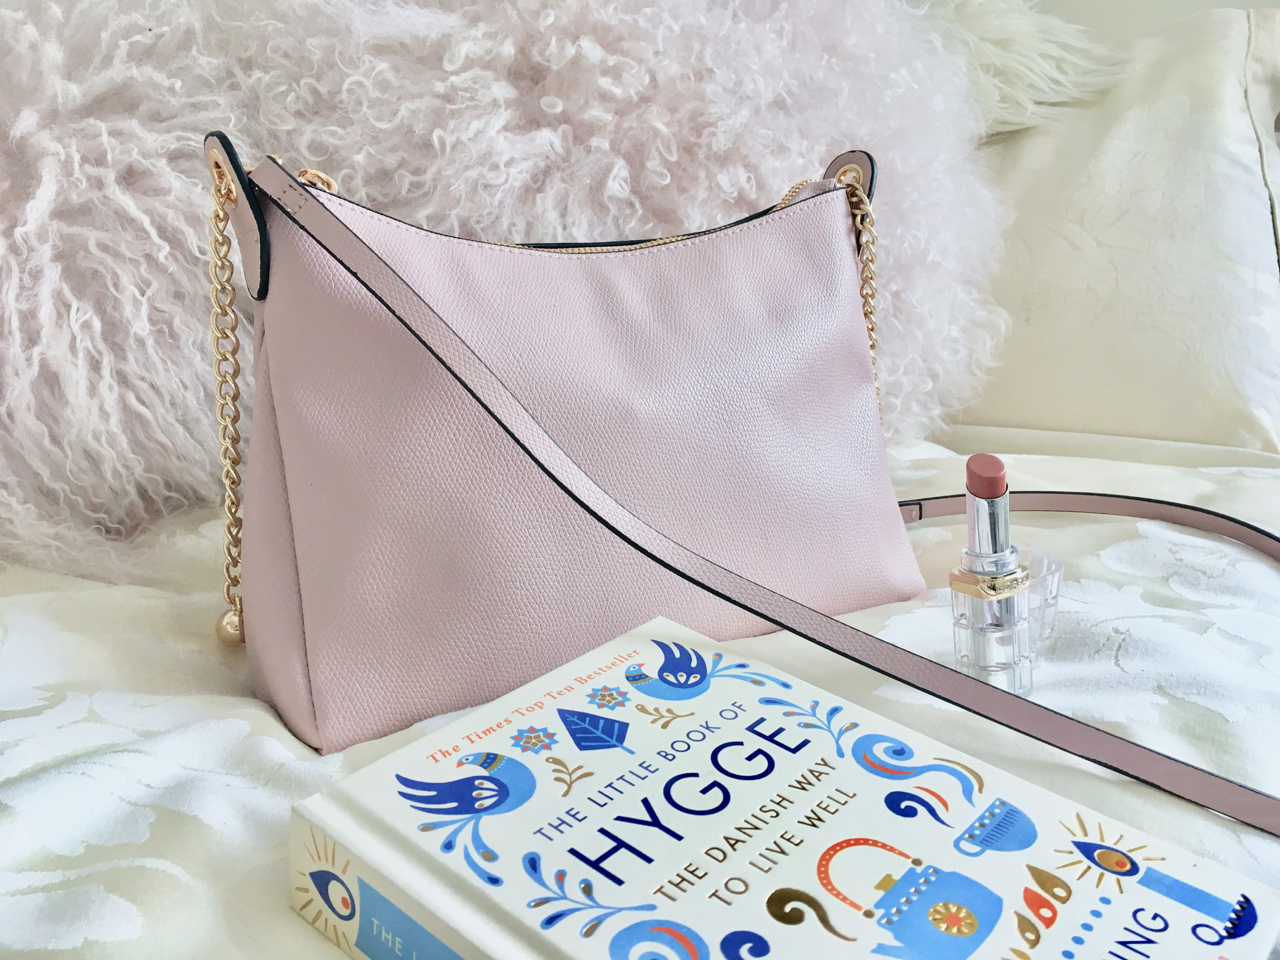 Pink H&M bag, lipstick and Hygge book